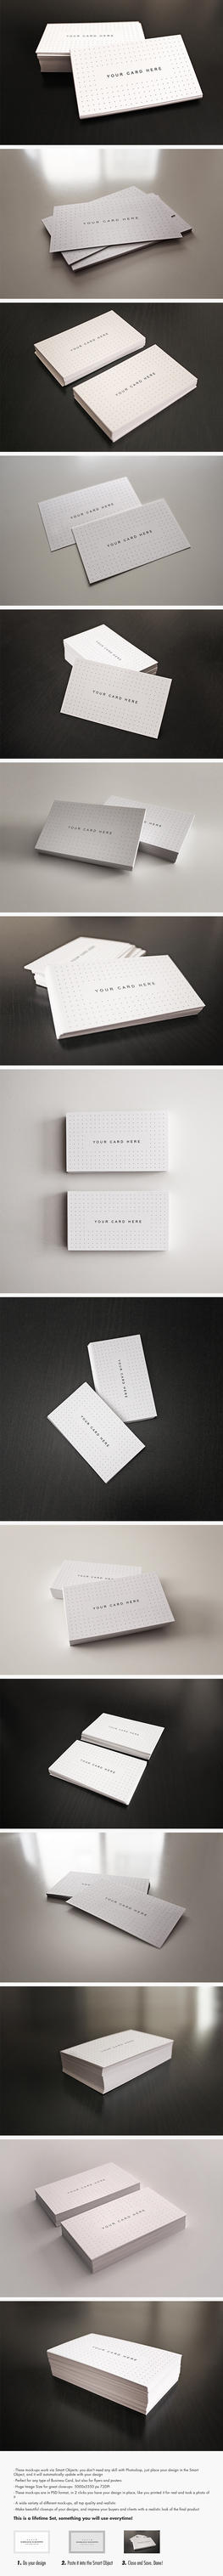 Flyer / Business Cards Mock-Up Bundle by Giallo86